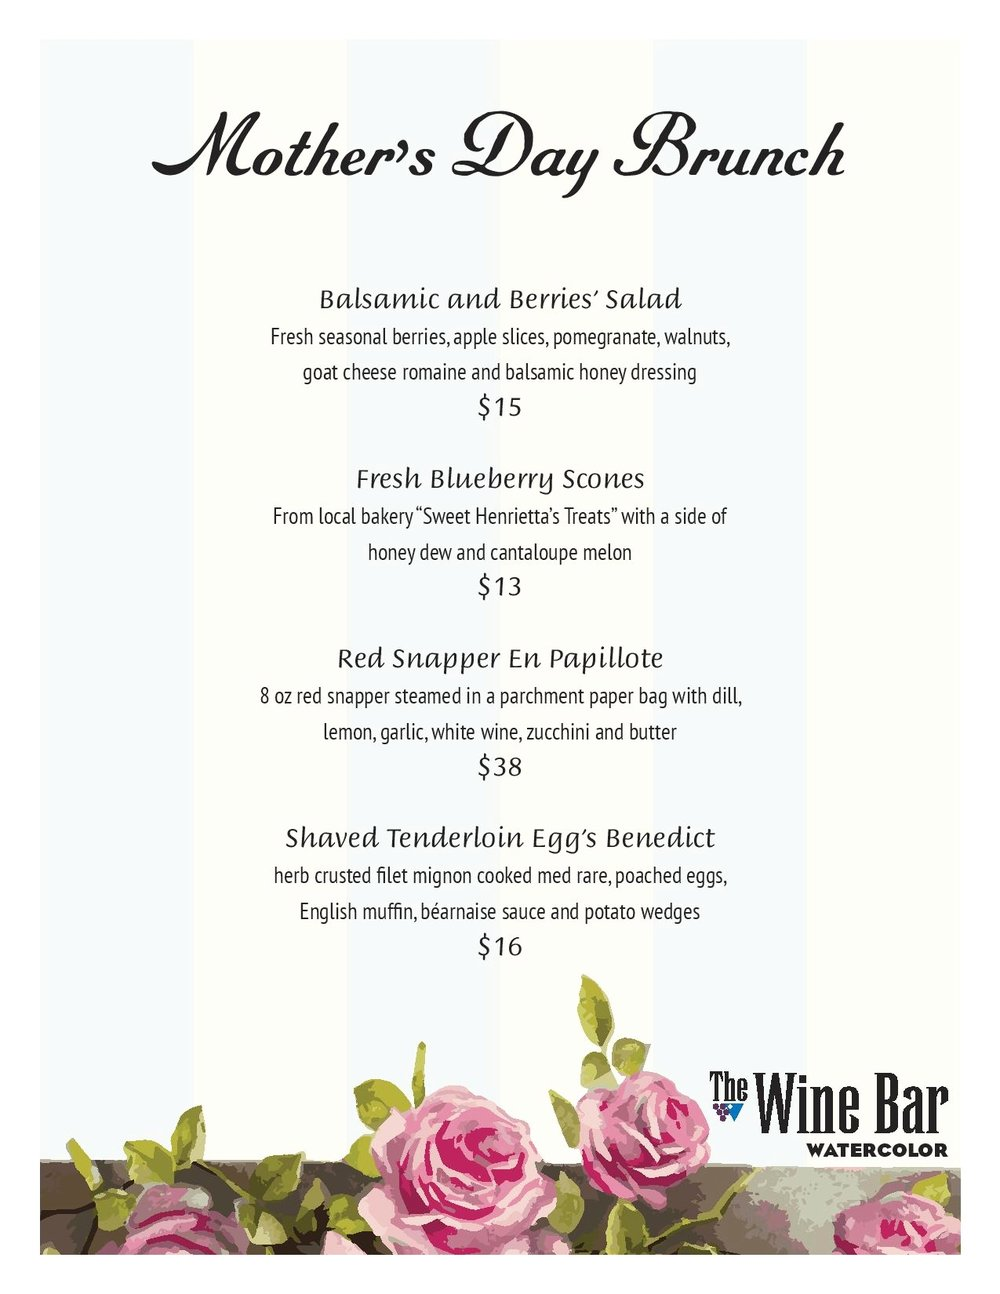 mothers day brunch menu_WC 2018-page-001.jpg